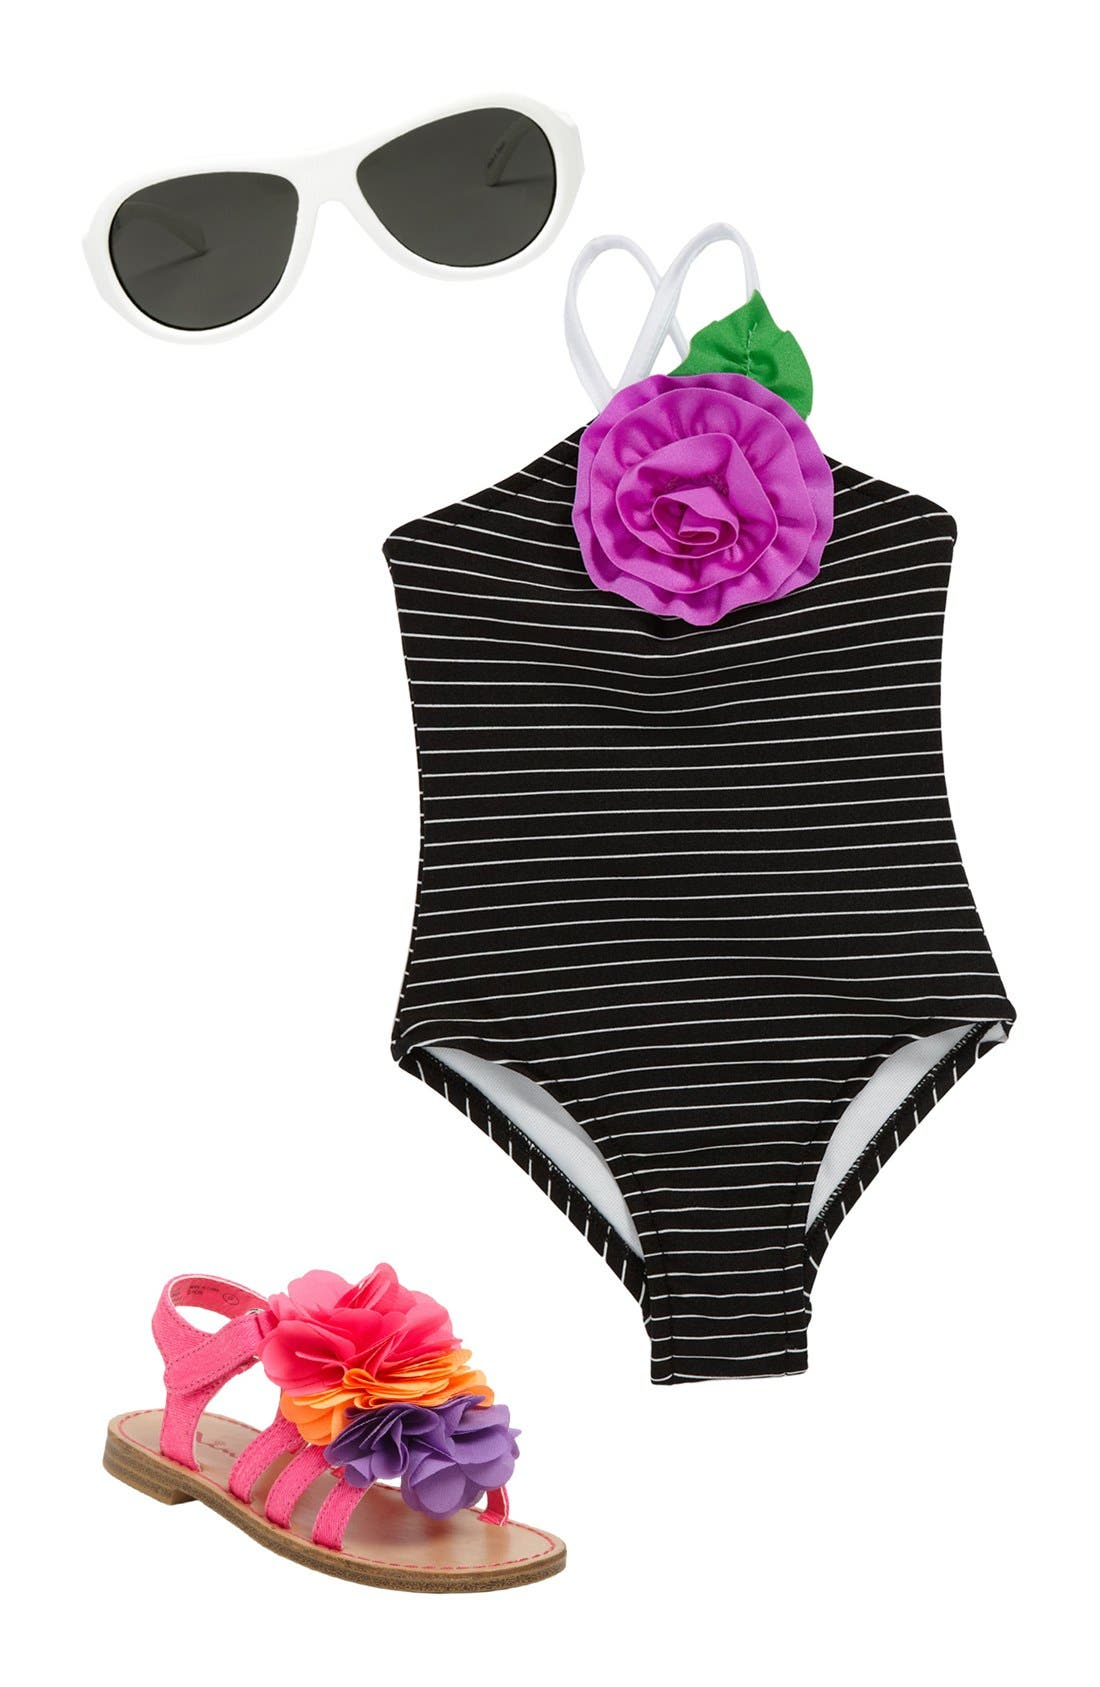 Main Image - Love U Lots Swimsuit, Babiators Sunglasses & Nina Sandal (Infant)